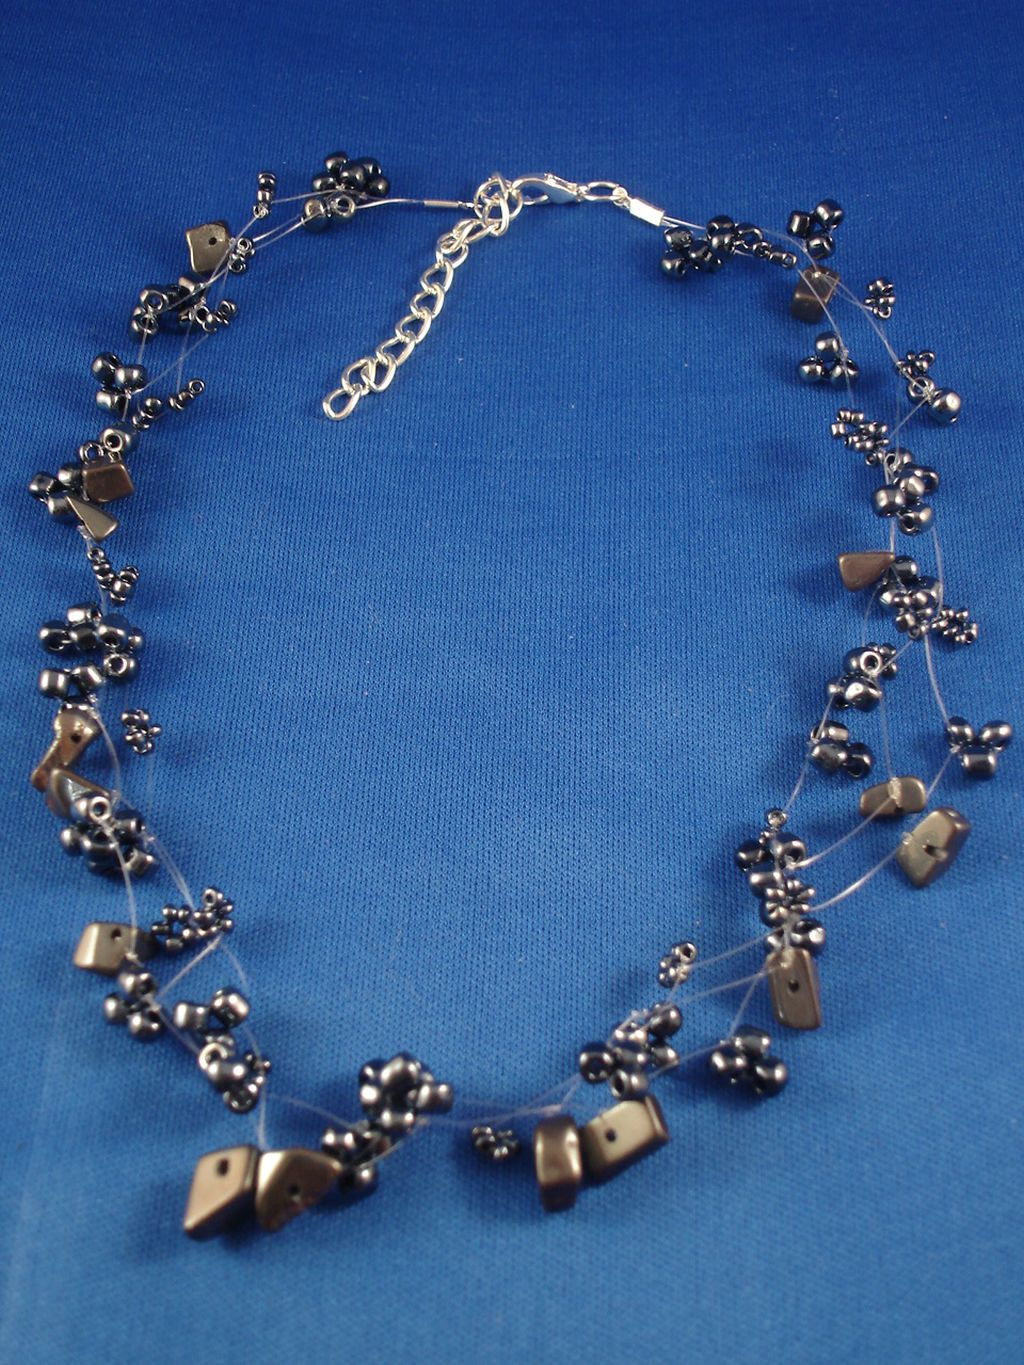 Necklace, Three Layers of Metallic Blue Beads & Genuine Stones, Fashion European Jewelry